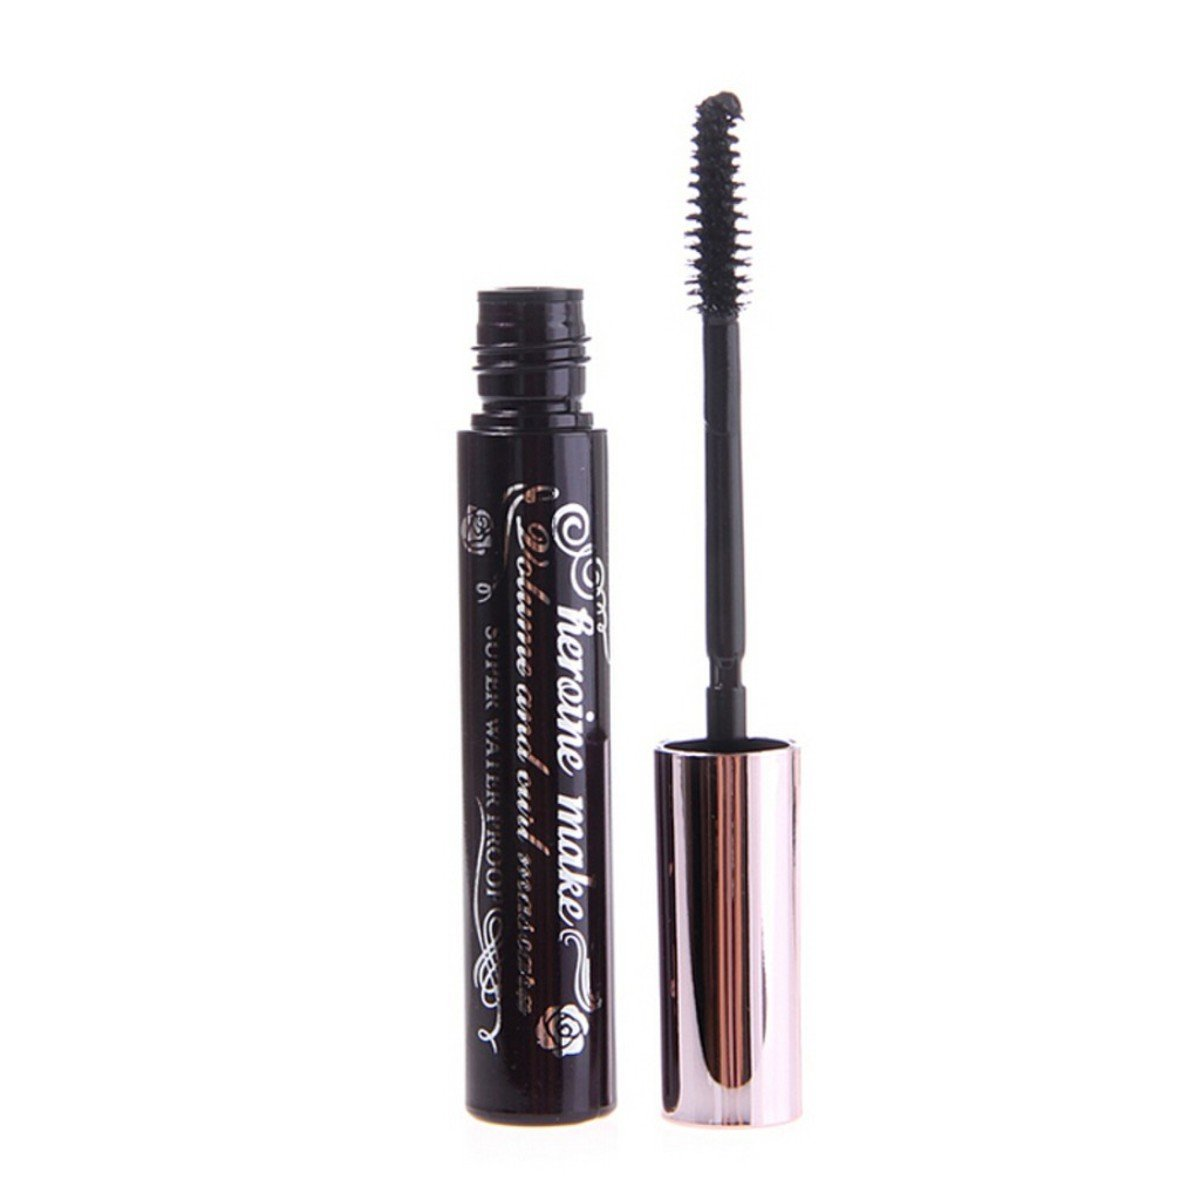 Heroine Make Volume & Curl Mascara Super Waterproof